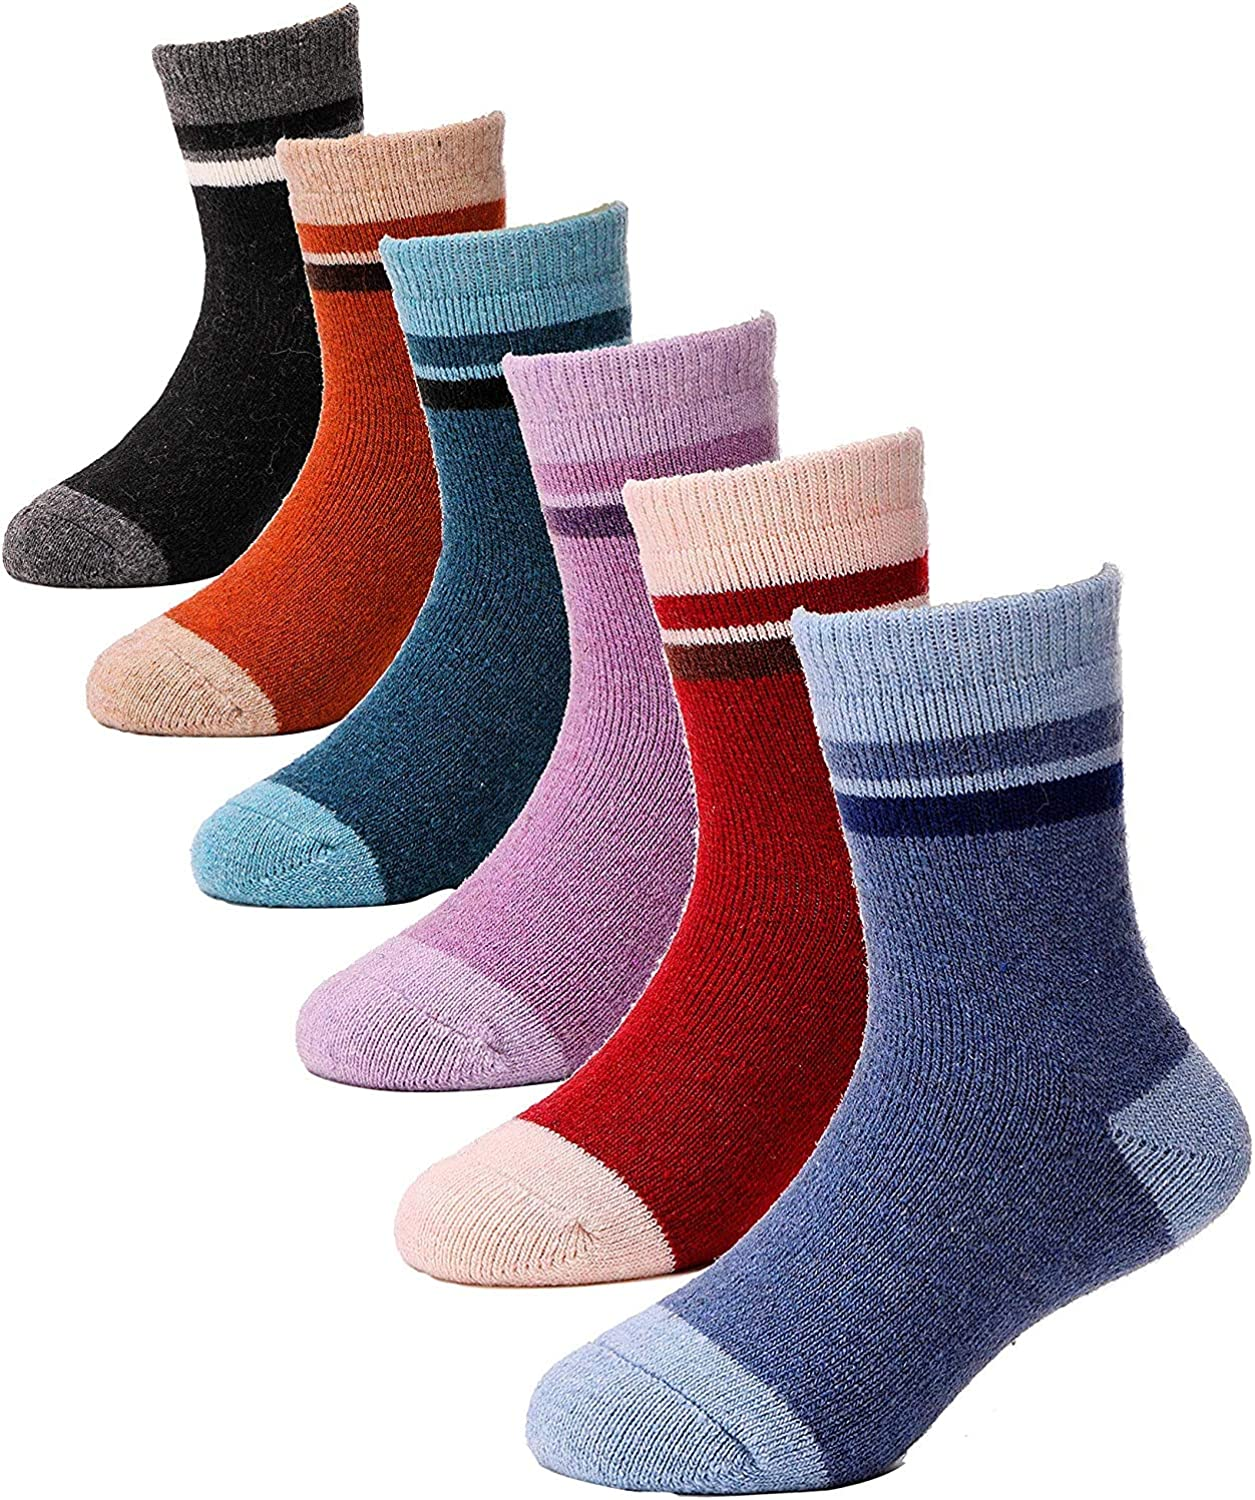 EBMORE Kids Girls Boys Wool Socks Thick Warm Thermal for Kid Child Toddlers Cotton Winter Crew Socks 6 Pairs